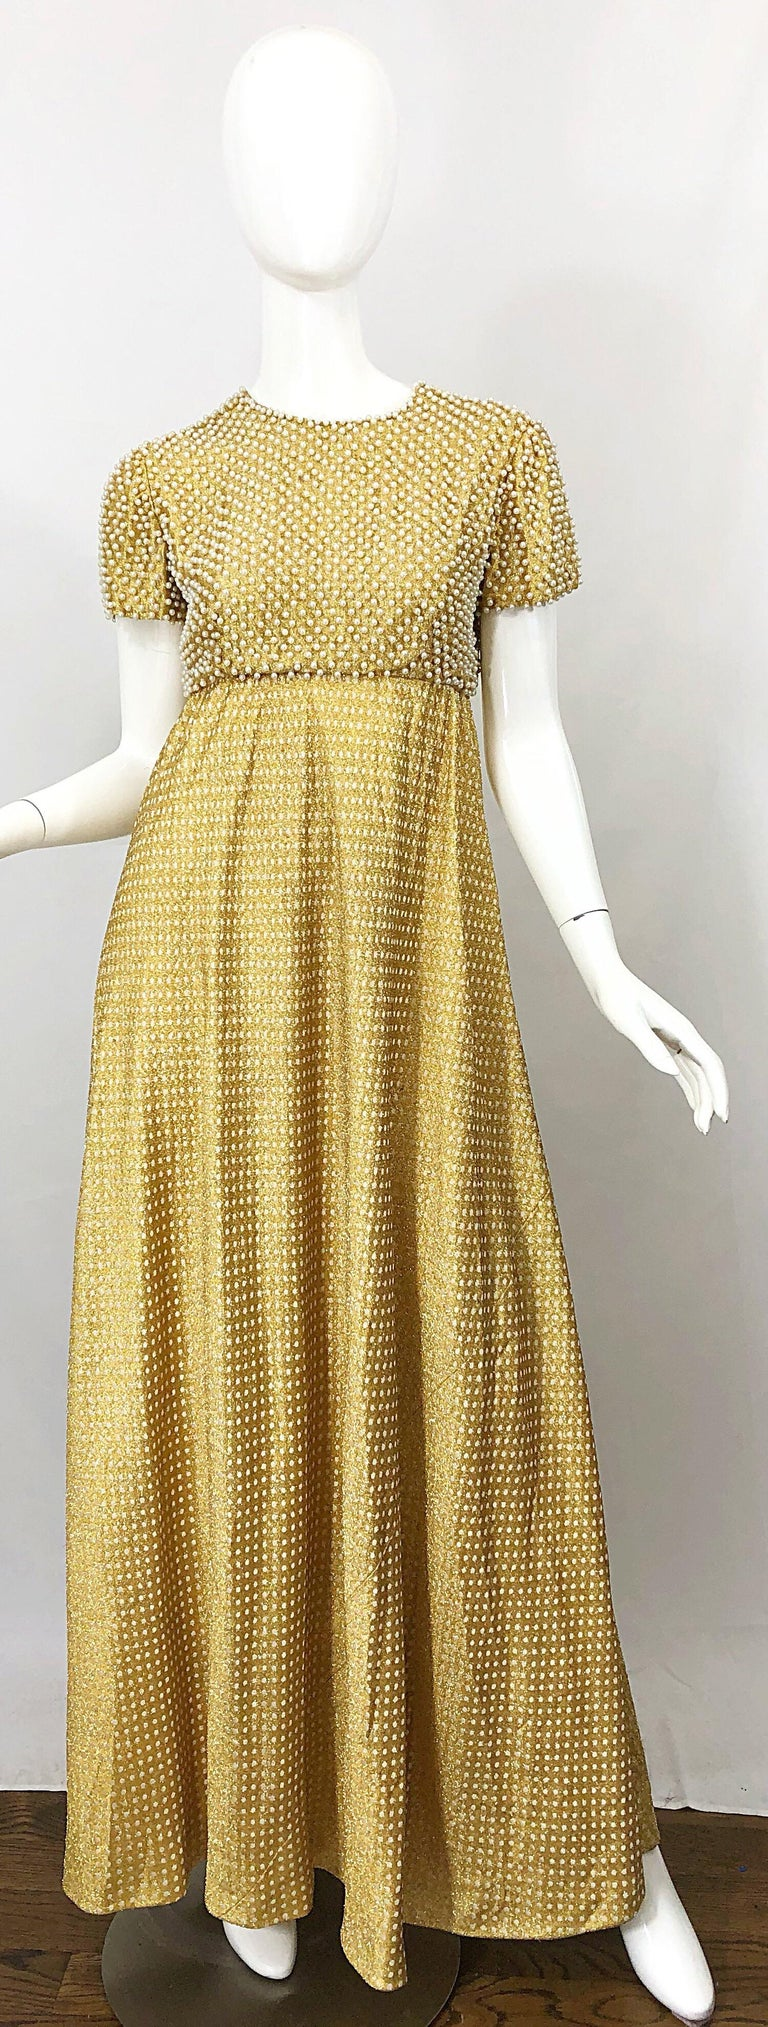 Musuem quality rare 1960s GEOFFREY BEEN gold silk metallic pearl encrusted short sleeve gown! Features hundreds of hand-sewn ivory pearls throughout the entire bodice. Gold silk lurex features white polka dots throughout. Hidden metal zipper up the